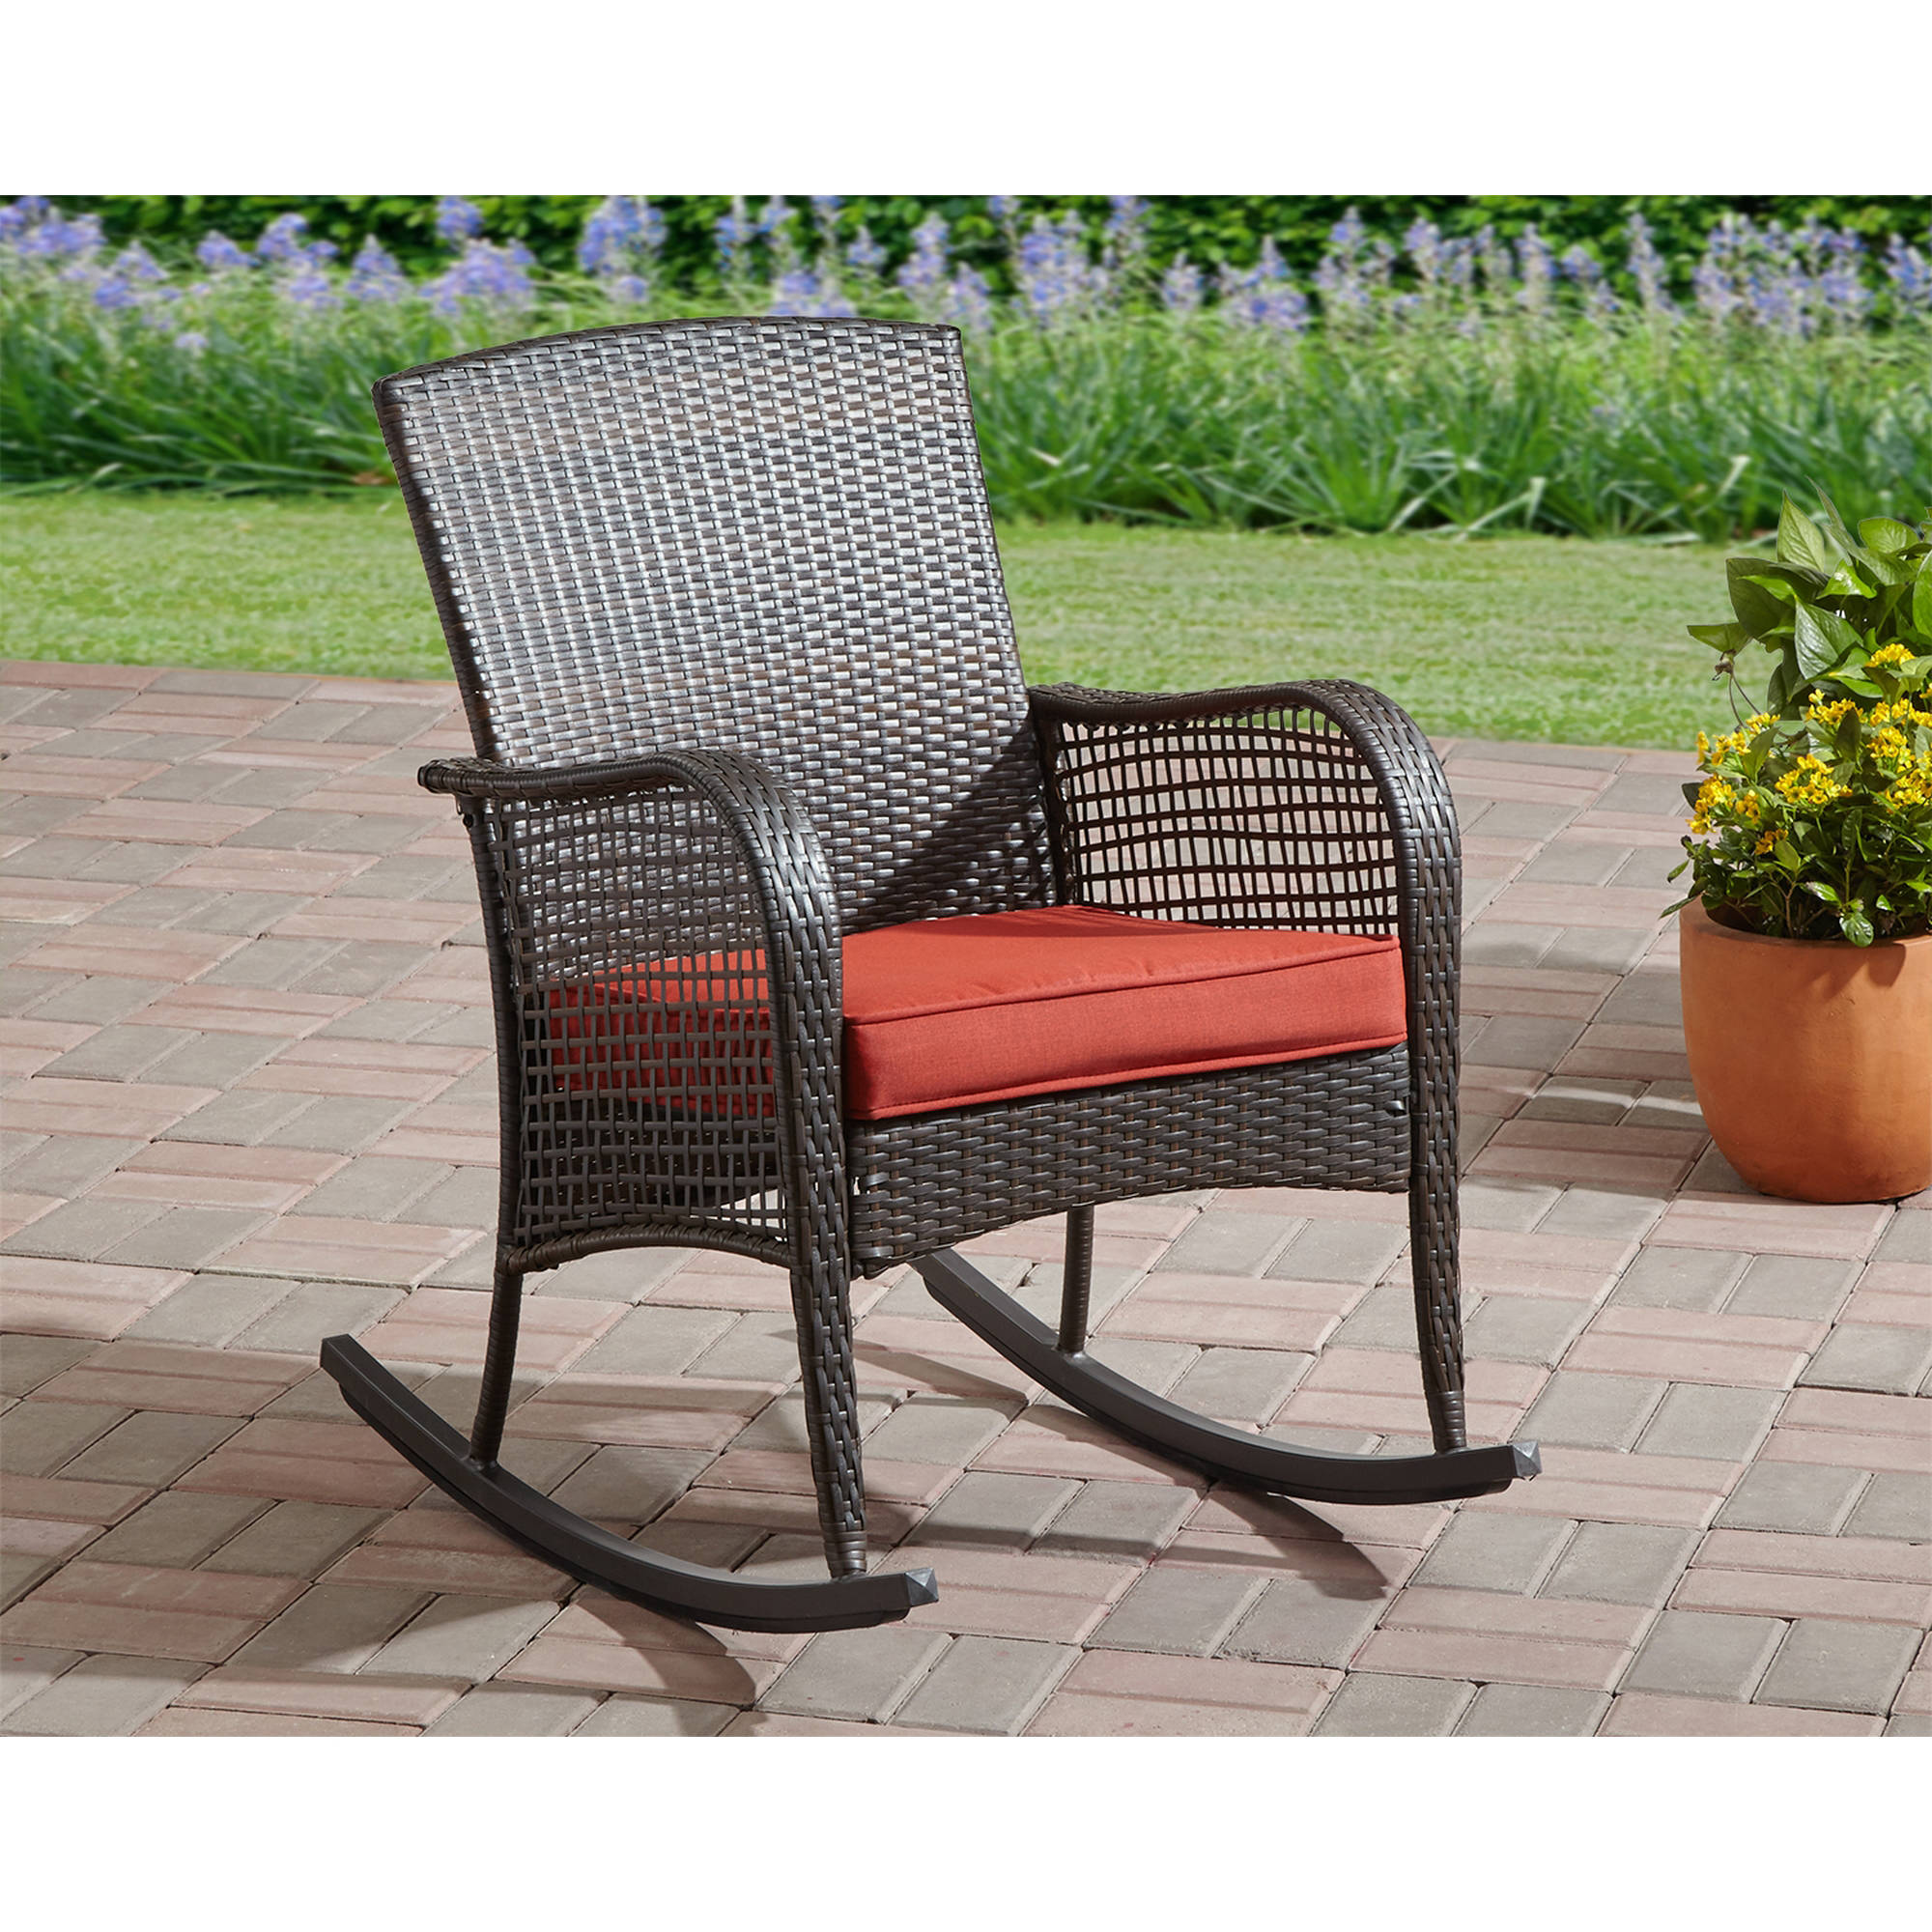 Mainstays Cambridge Park Wicker Rocking Chair Walmart